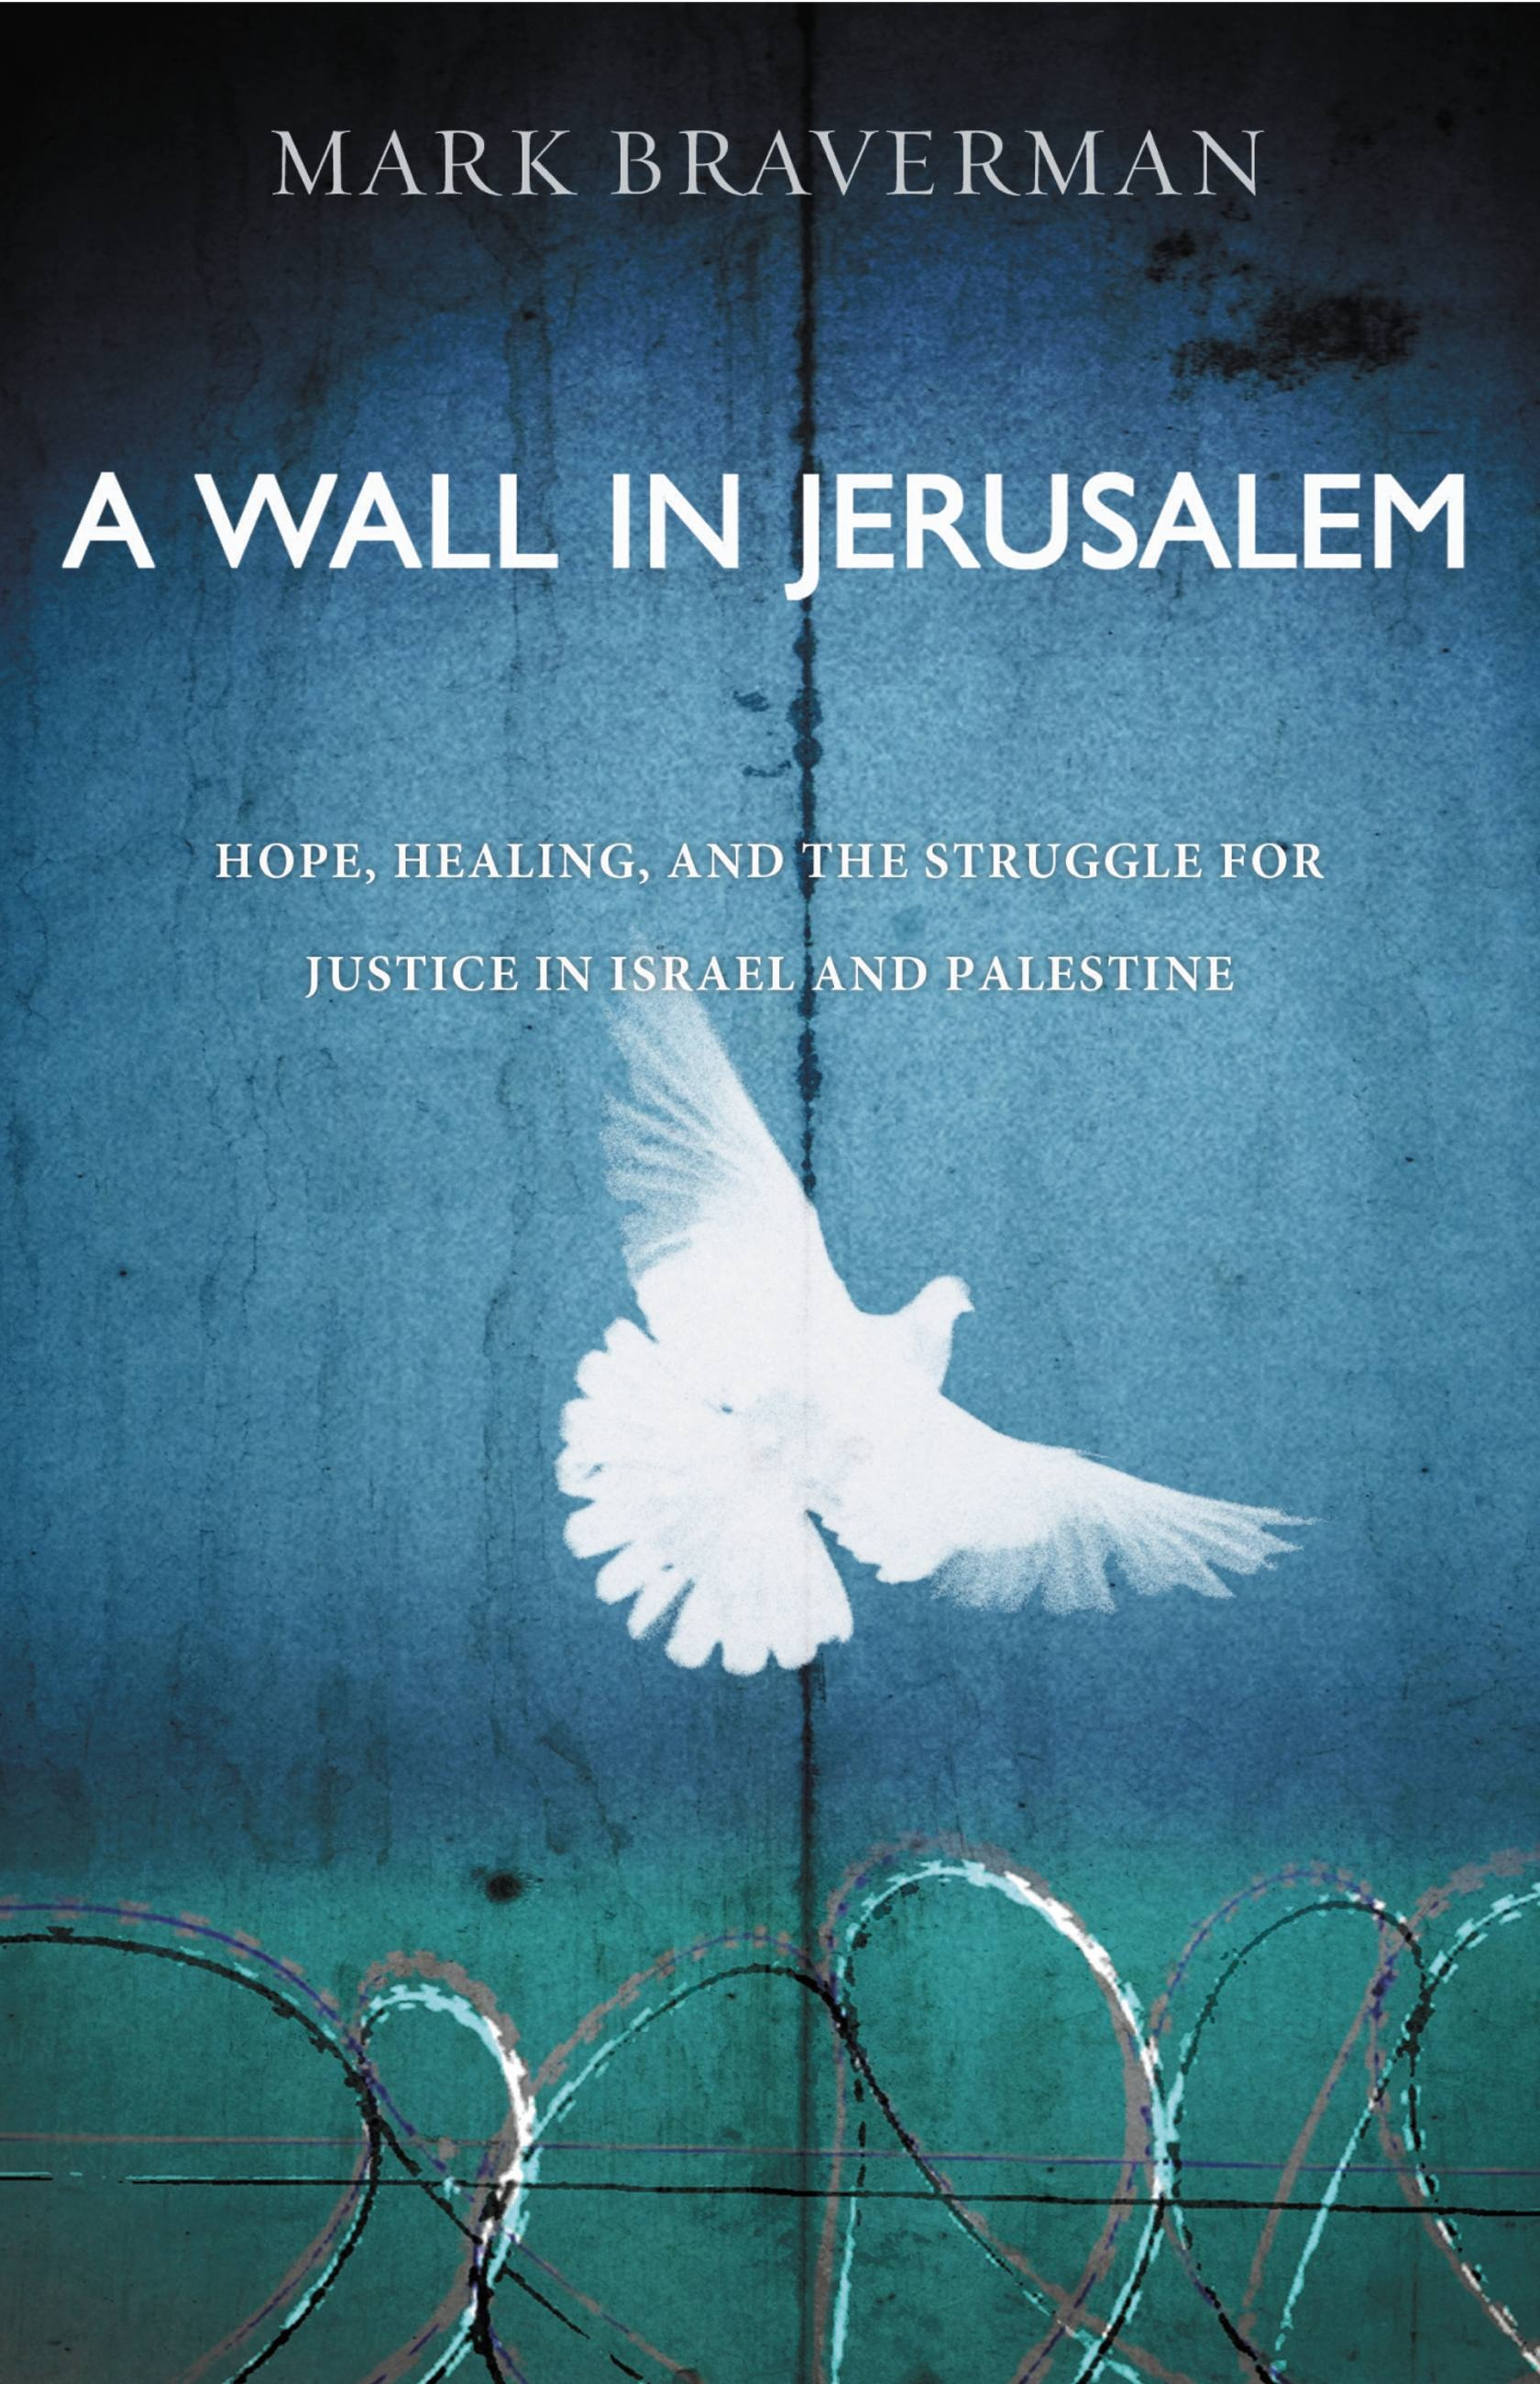 A Wall in Jerusalem